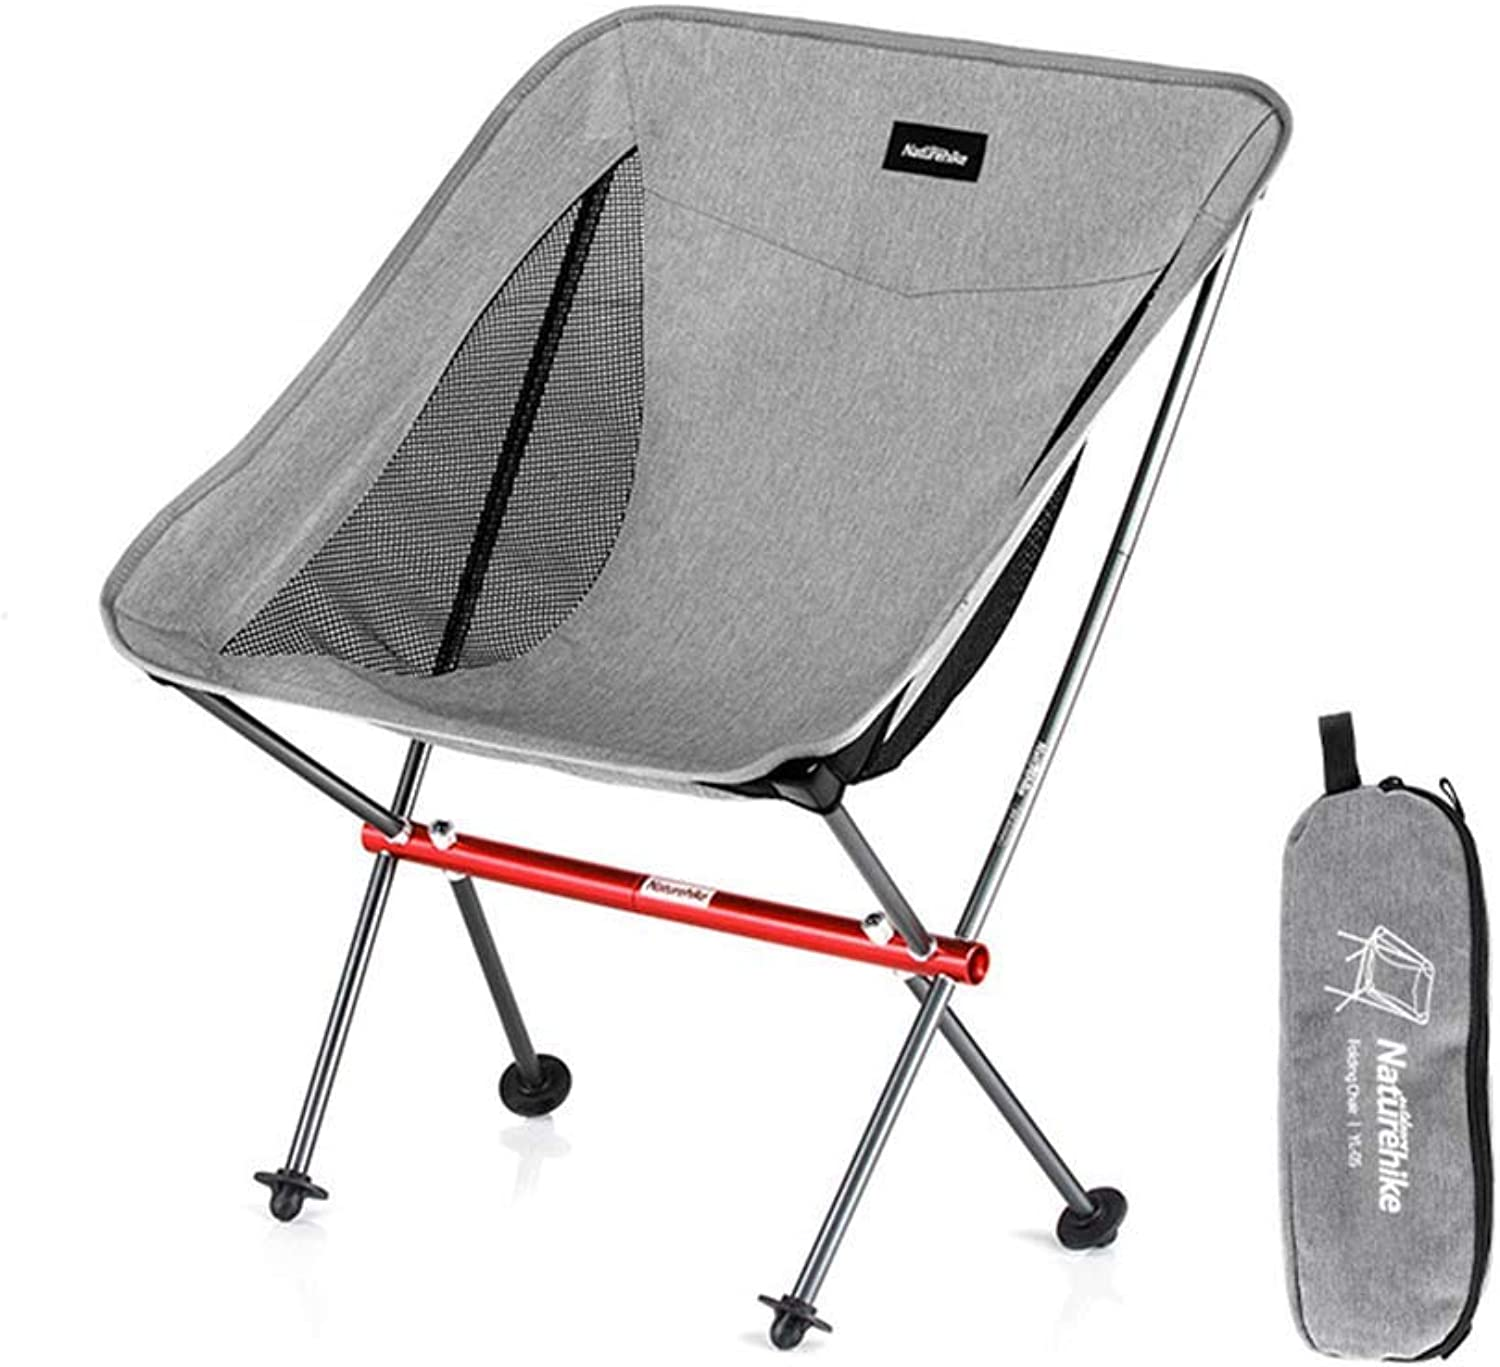 Camping Chair Ultra Light Folding Fishing Chair Comfortable High Back Design, Travel Chair with Portable Carrying Case